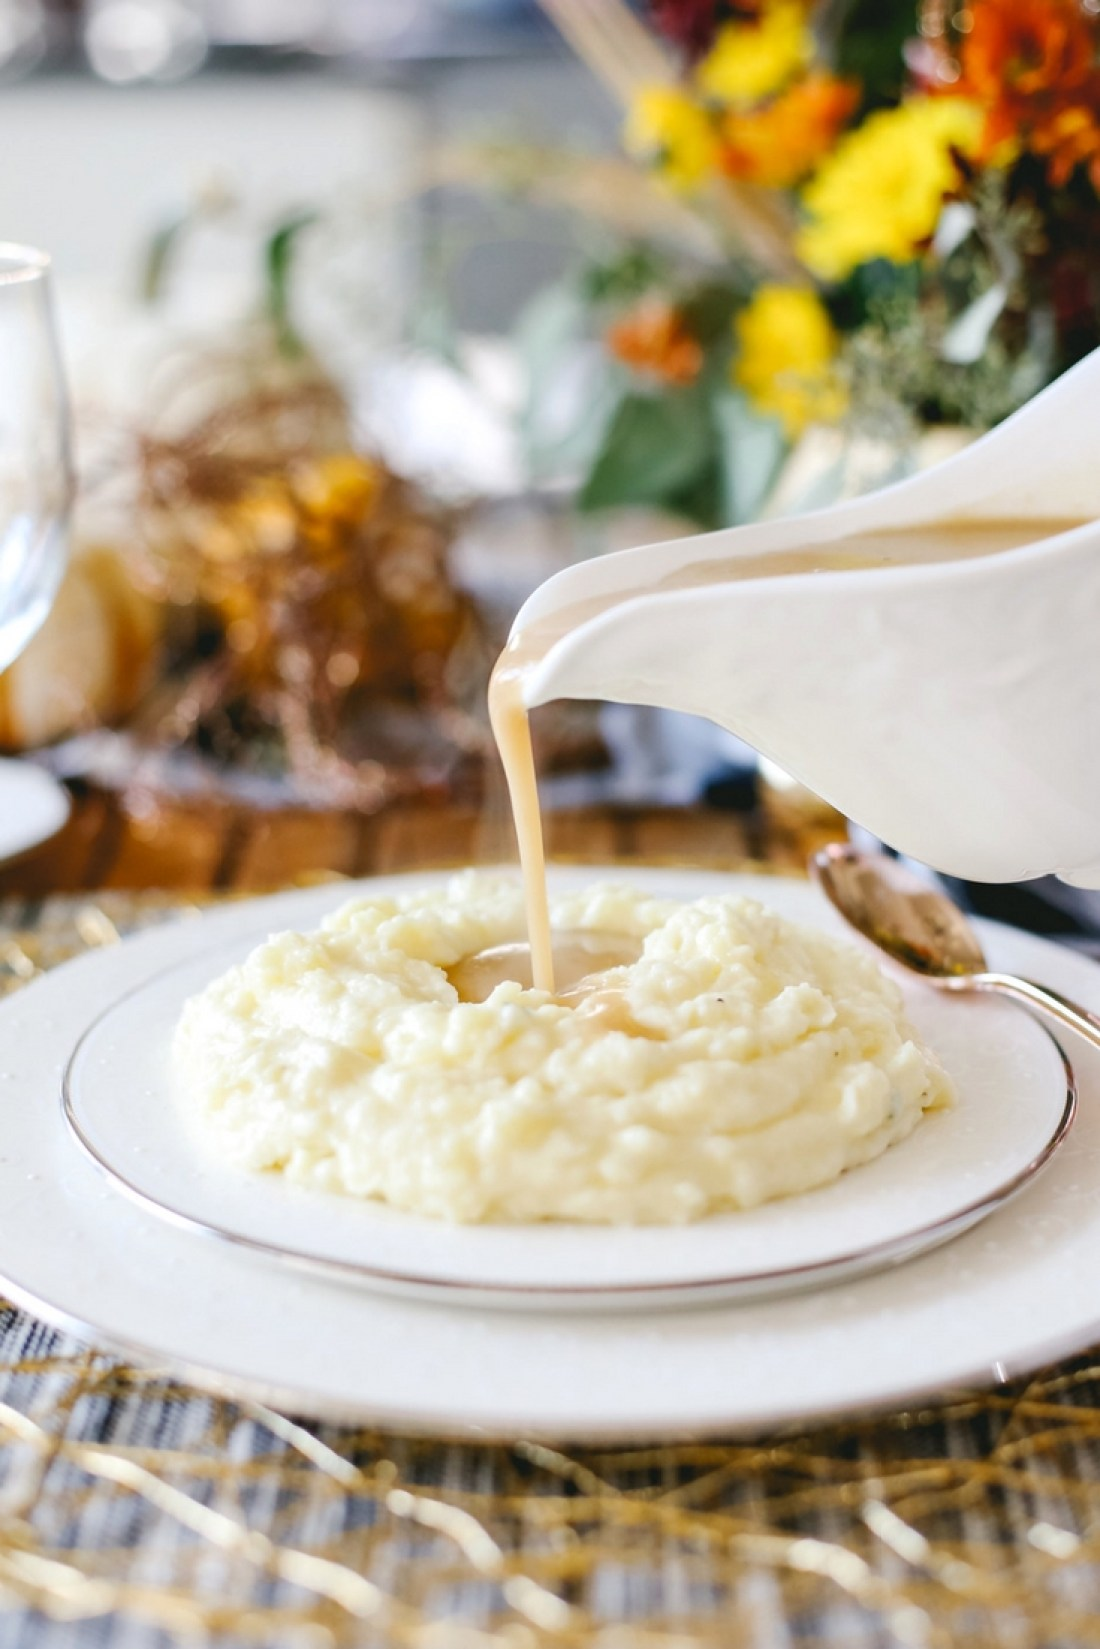 The trick to perfect creamy mashed potatoes is boiling the whole potatoes, then quickly peeling and mashing them together with milk, cream, butter and salt.